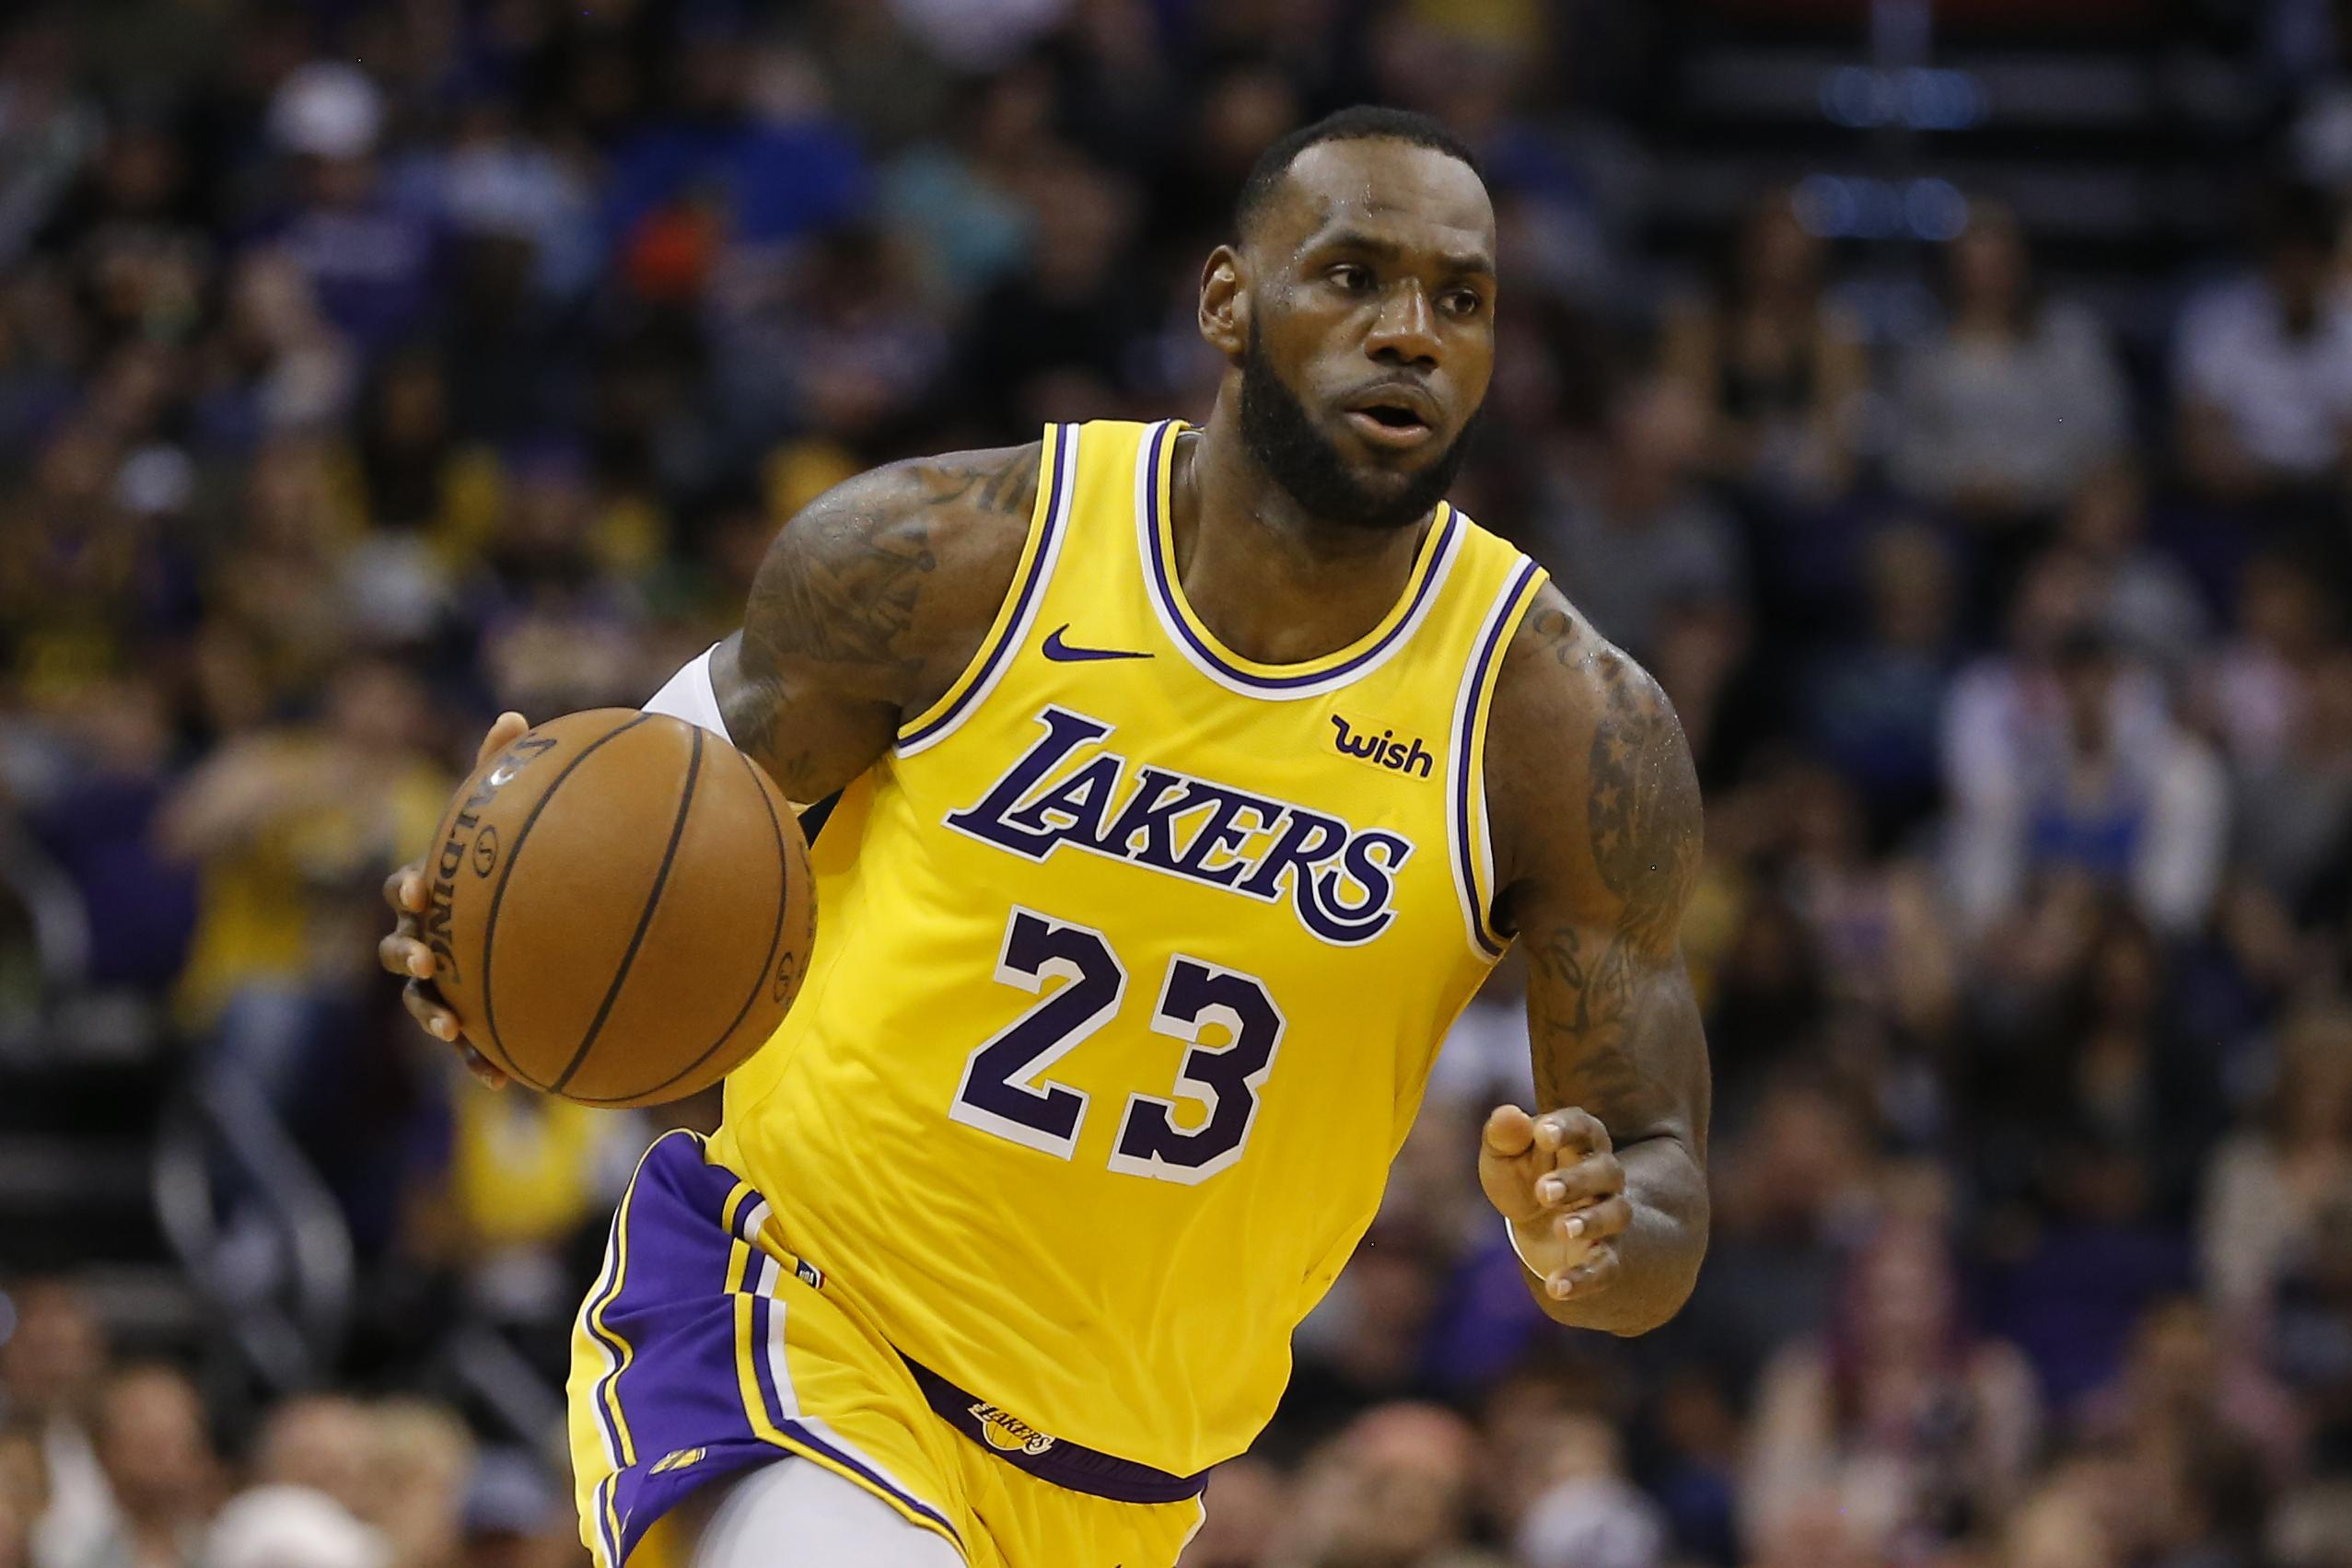 fa0ddda8 In this Saturday, March 2, 2019 photo, Los Angeles Lakers forward LeBron  James